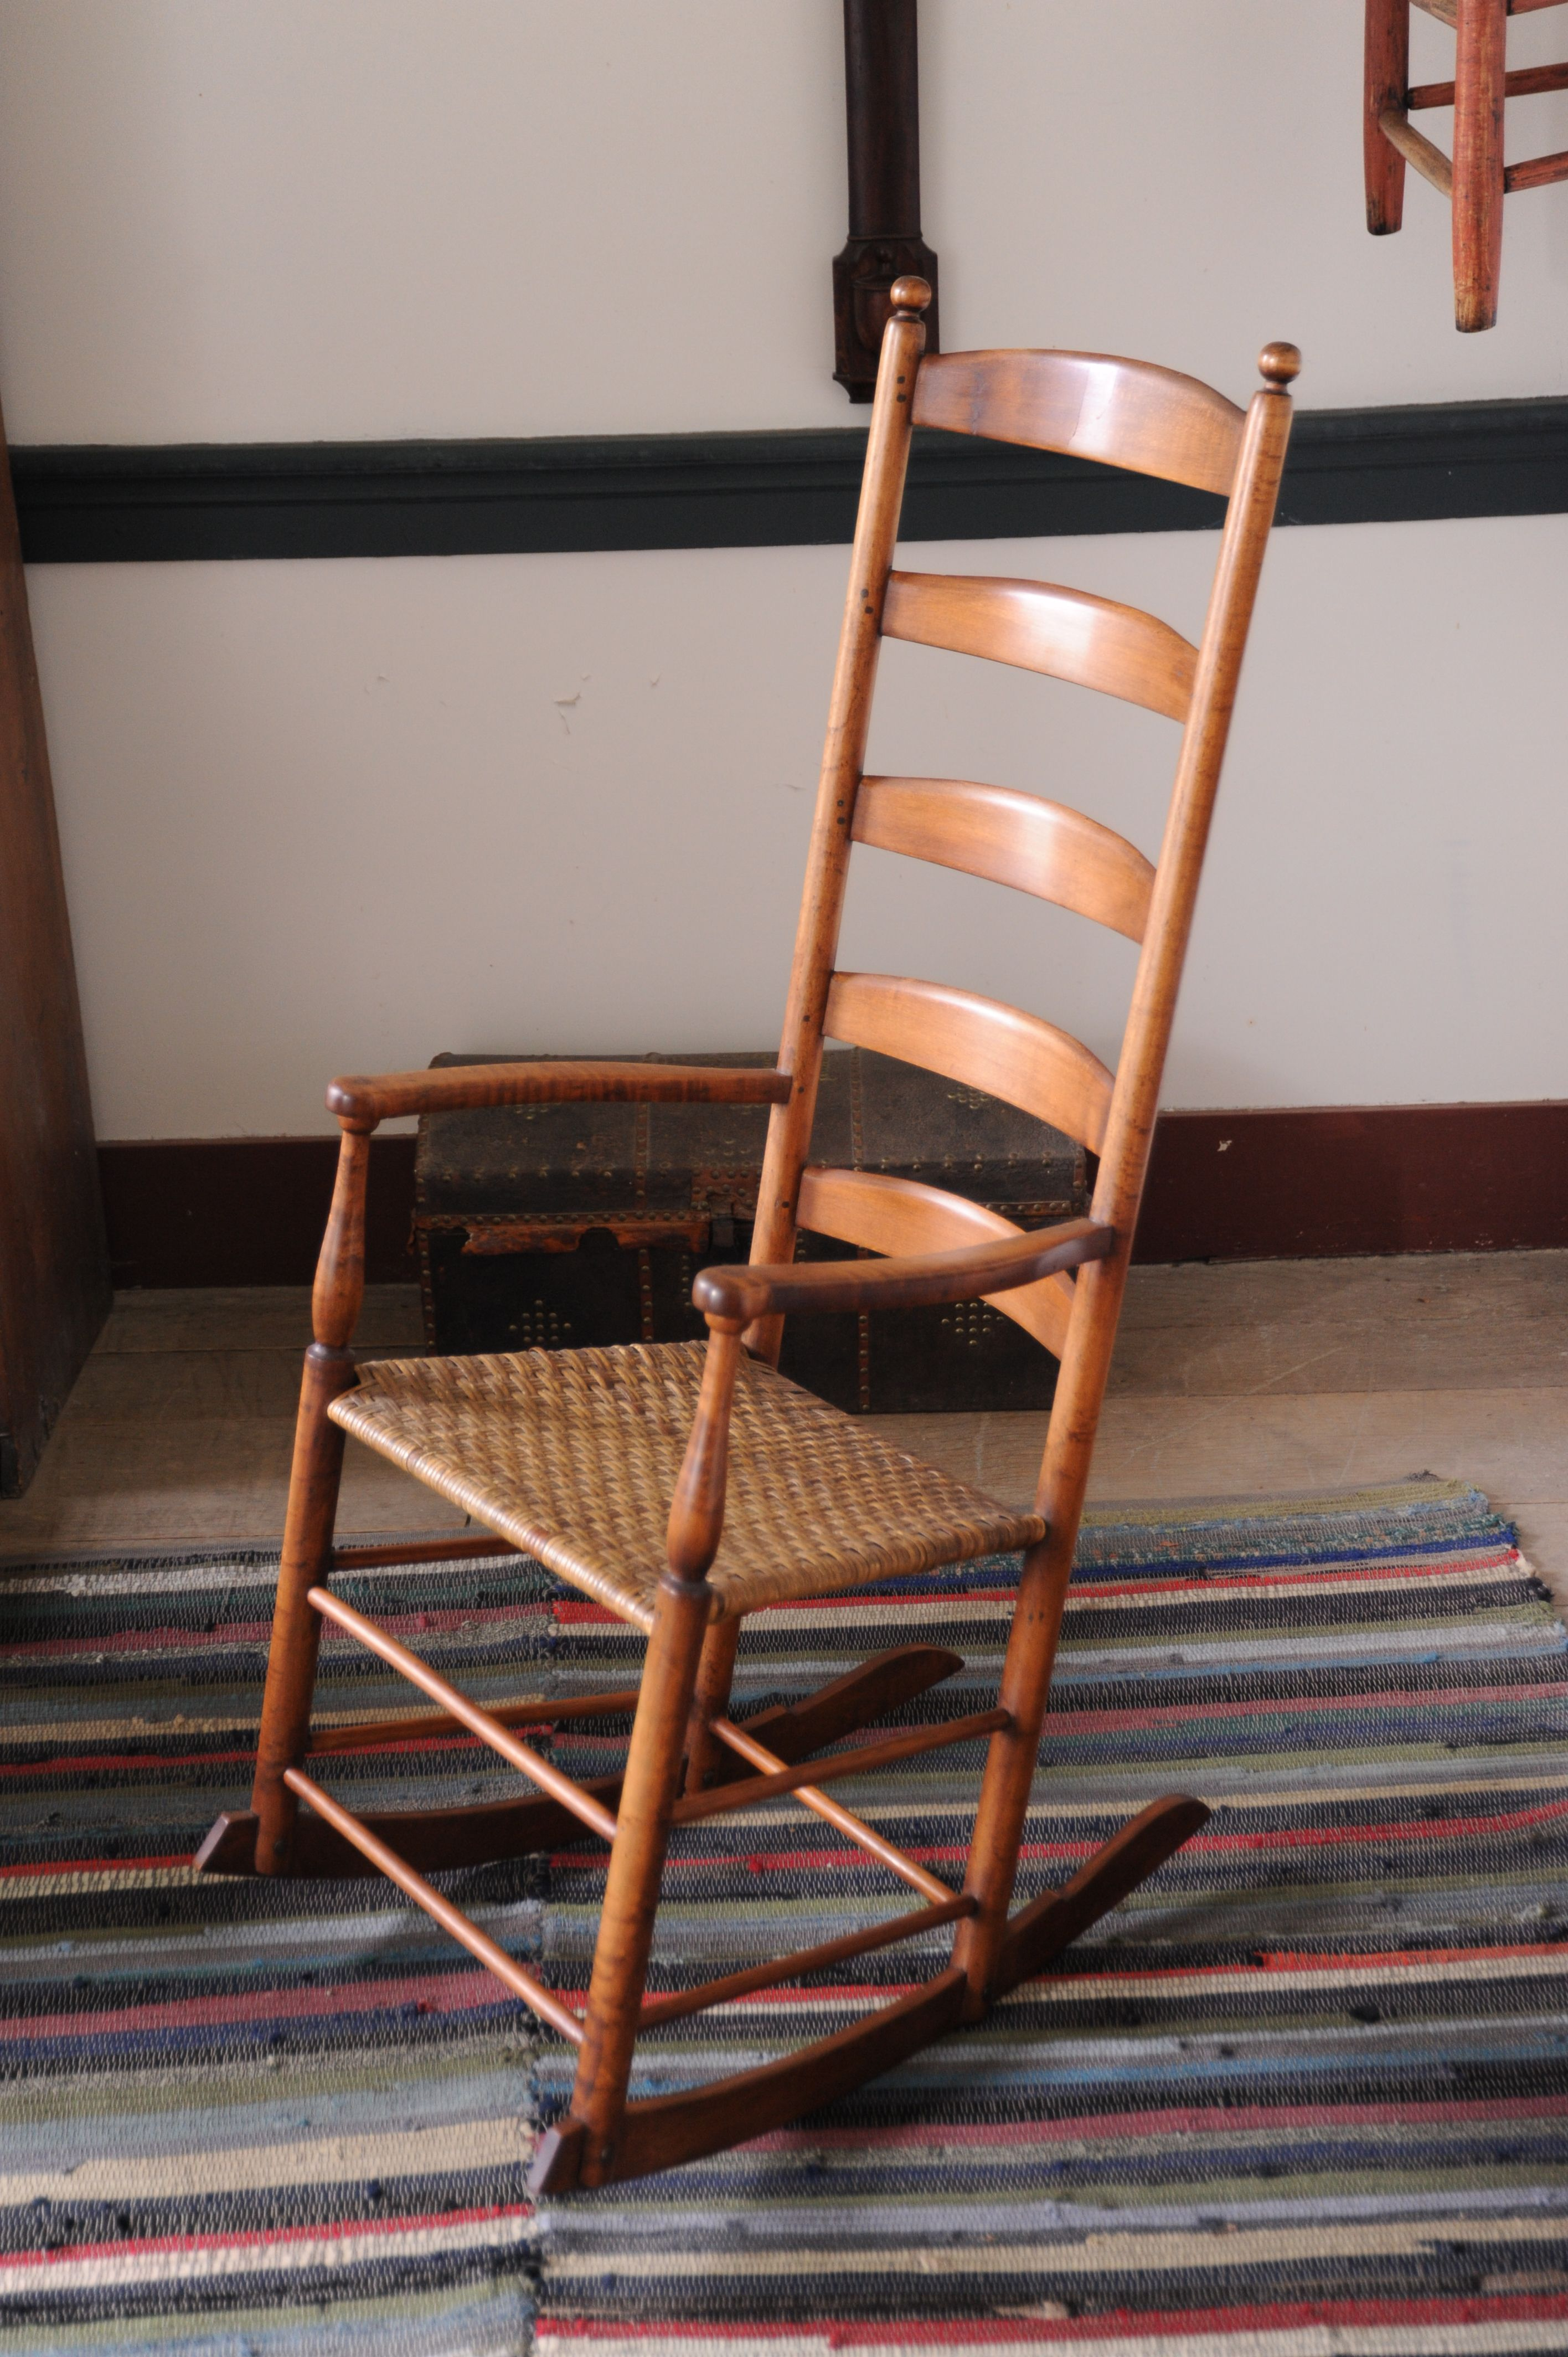 Antique upholstered rocking chair styles - Find This Pin And More On Shaker Style Tis A Gift To Be Simple Furniture